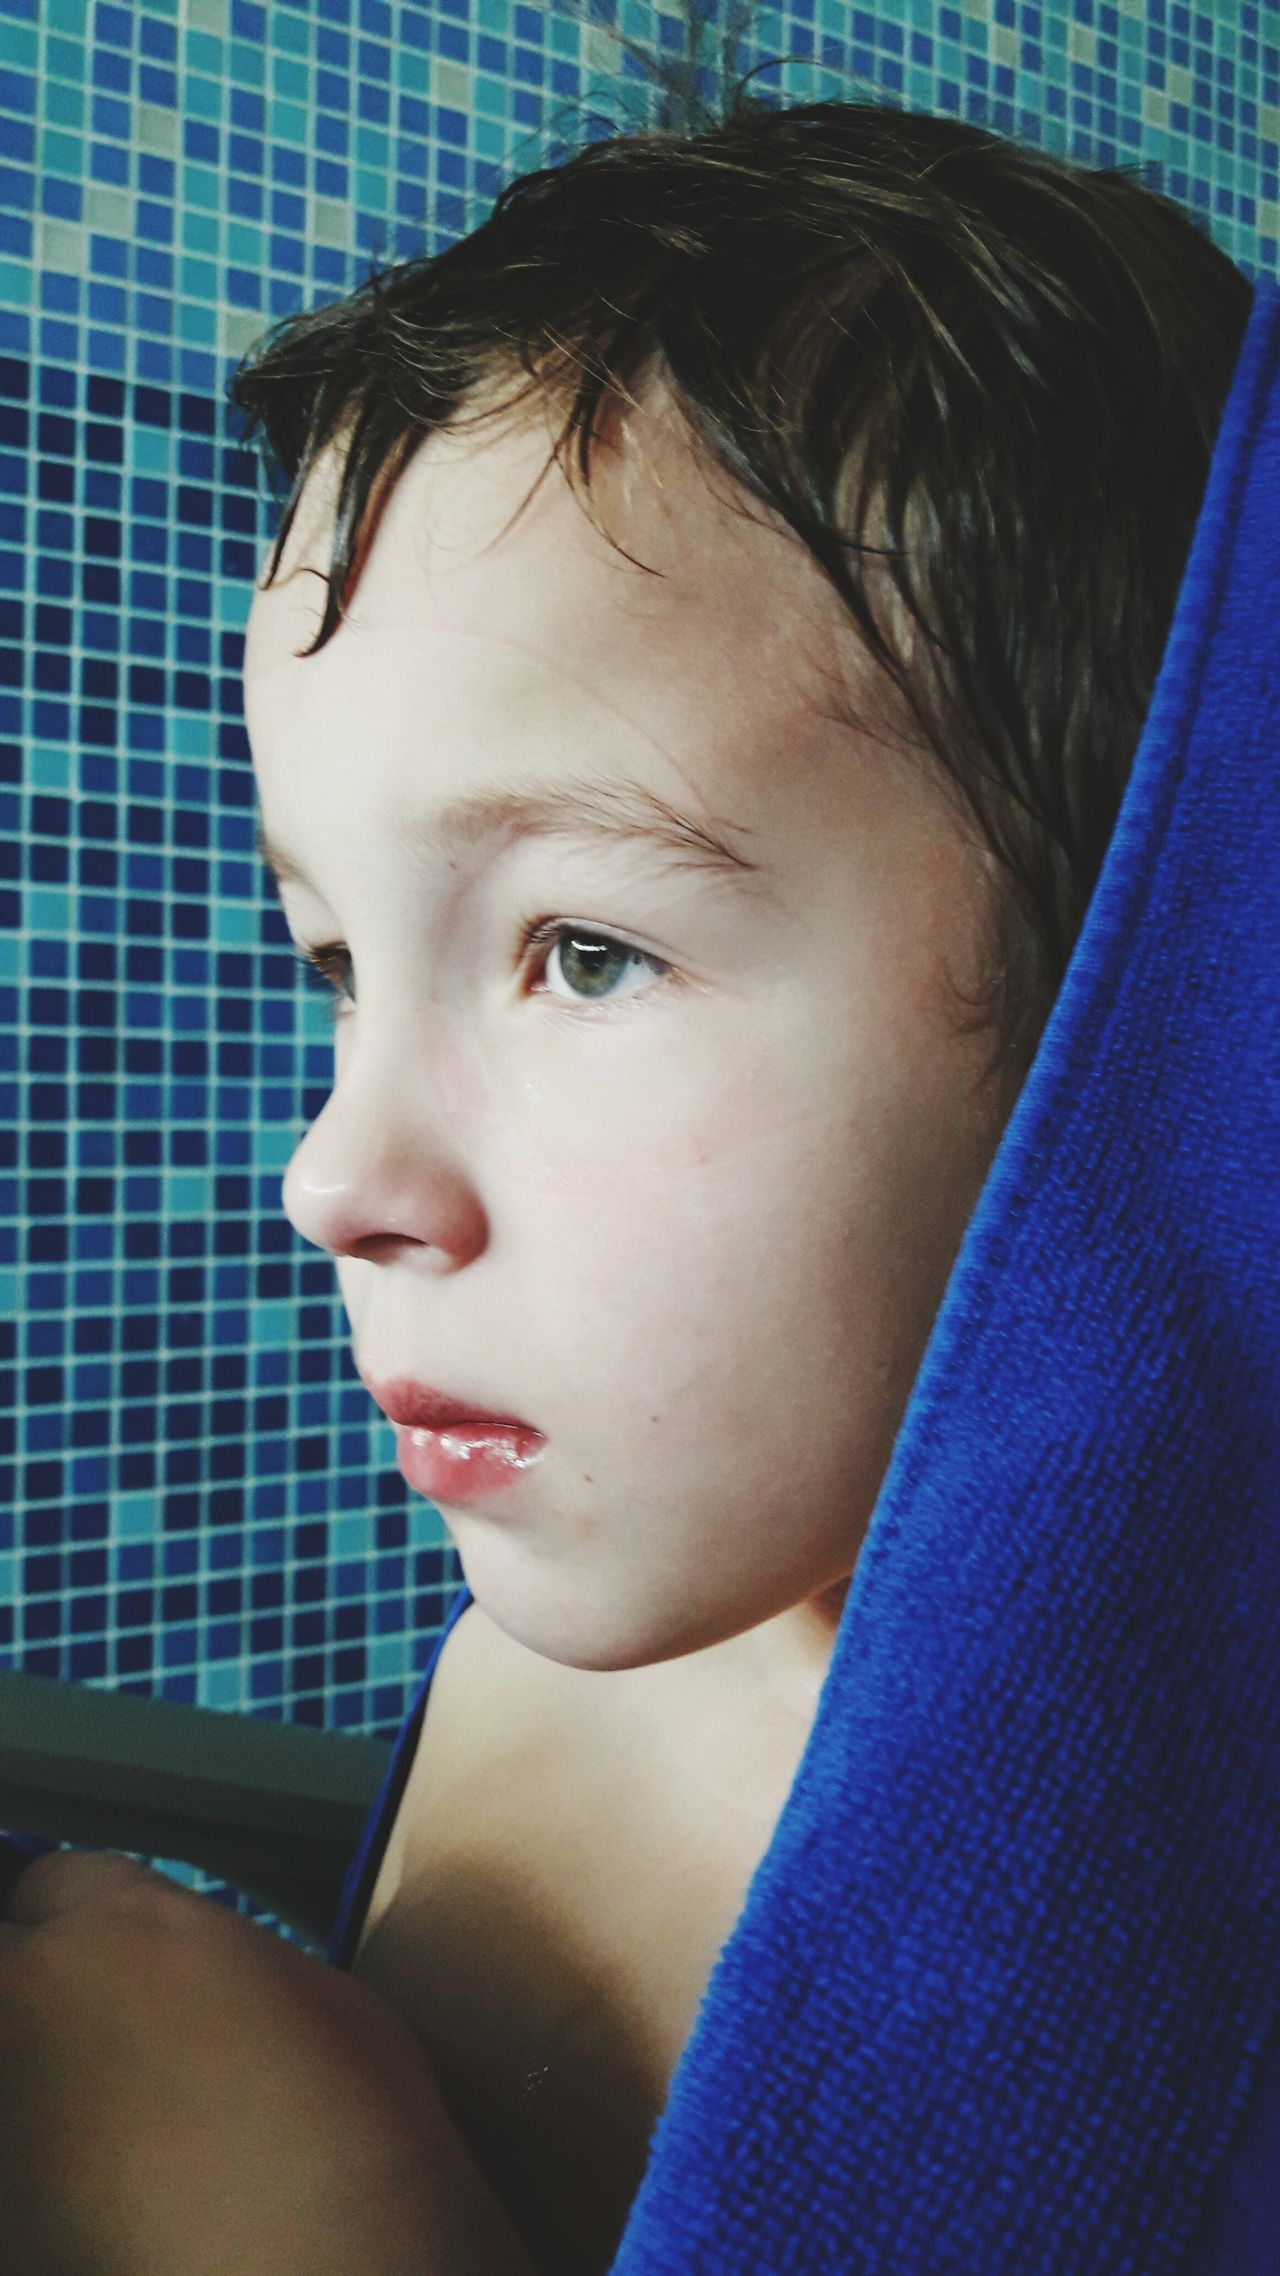 Boy, after swimming, tired, swimming, pool, Headshot One Person Indoors  , Sport, Rest